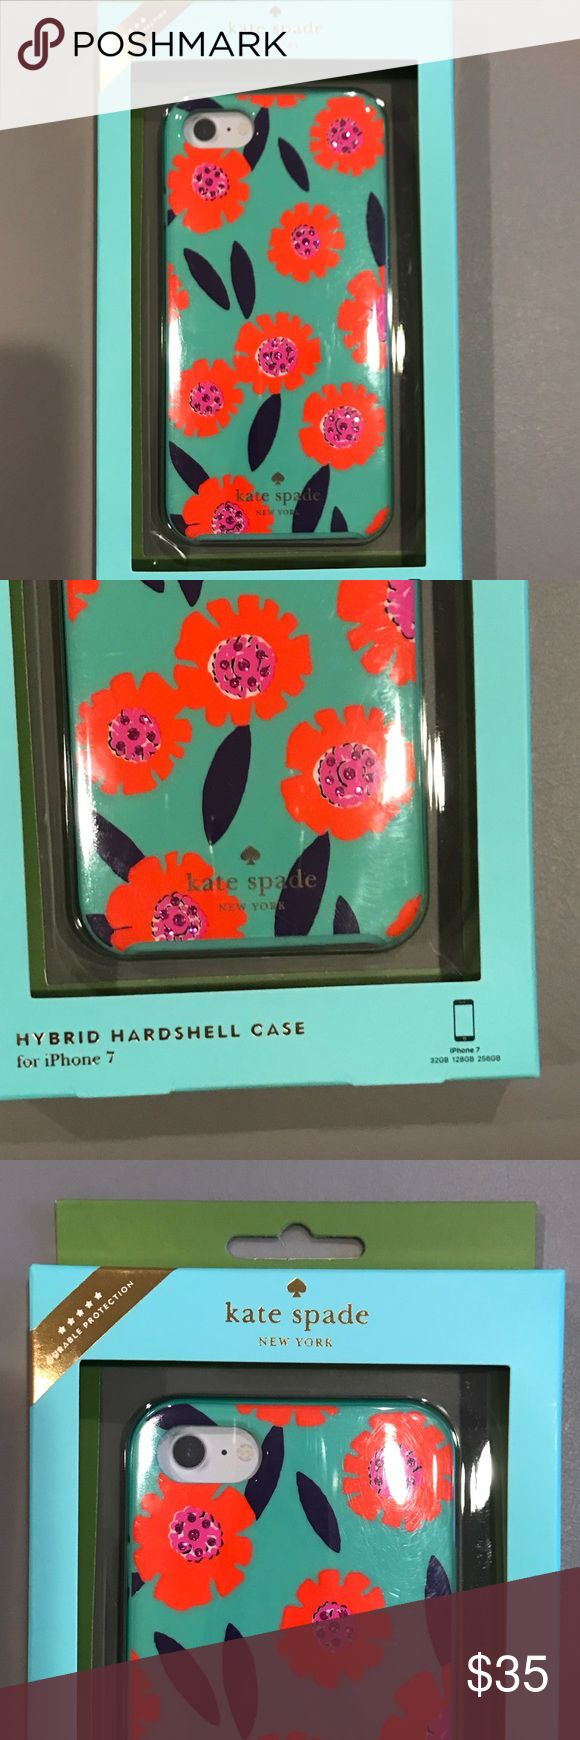 Kate Spade IPhone 7 Case Brand New in box.   Authentic!  Size: IPhone 7  Color : green background with pink flowers inside flower has rhinestones  Style:  Hybrid Hardshell Case  Sorry no trades.   🛍 kate spade Accessories Phone Cases